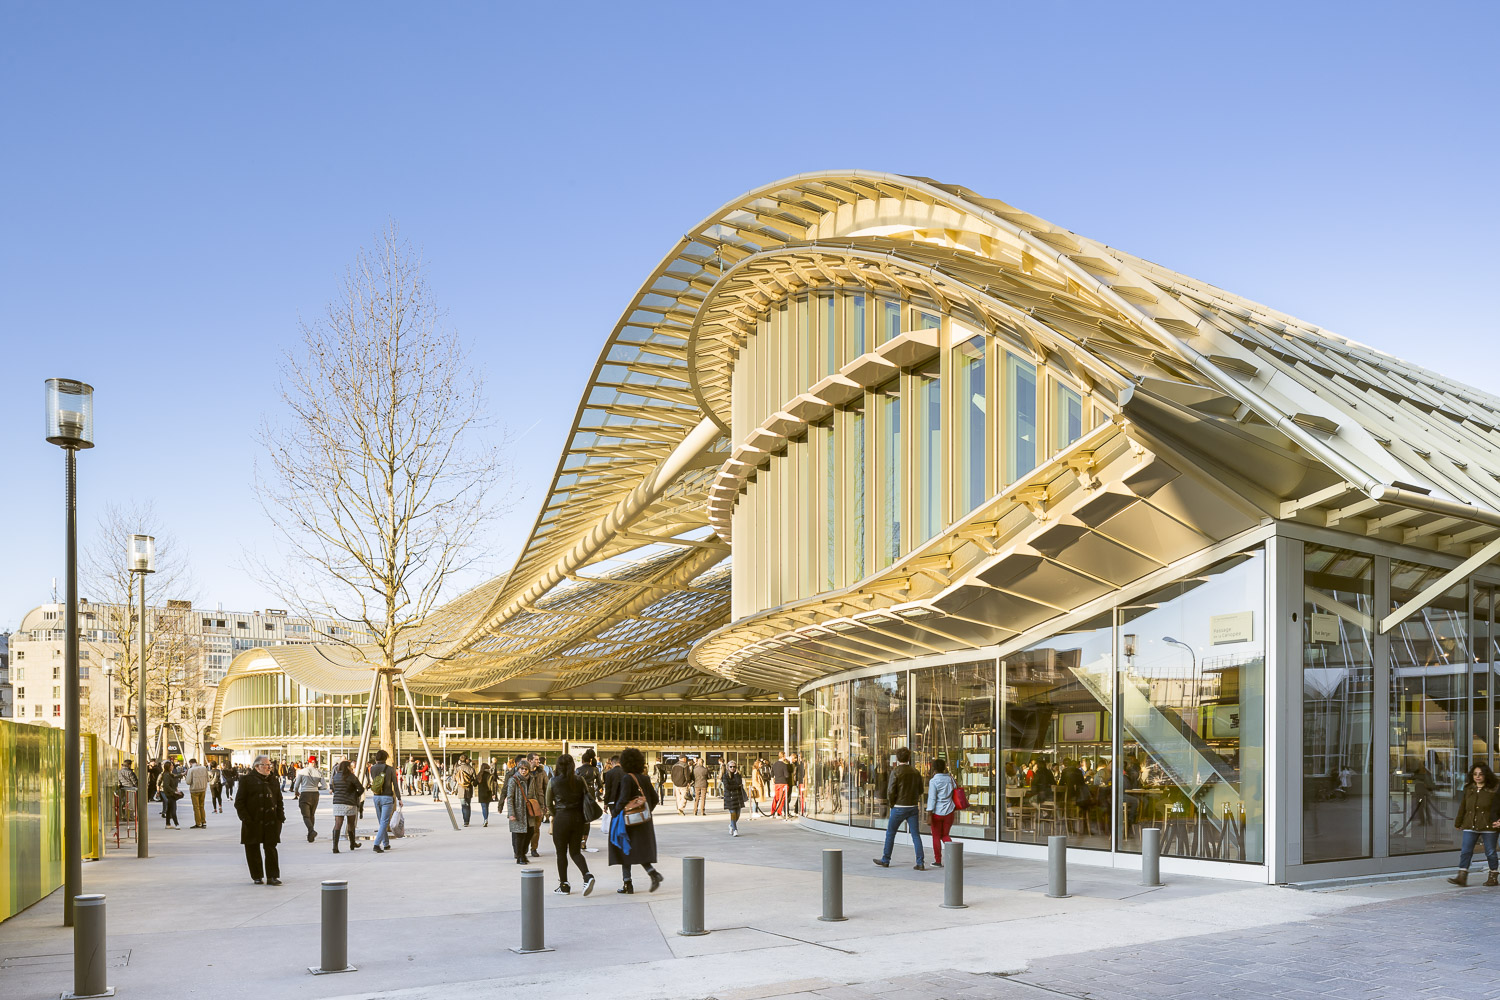 Safestore Self Storage in Châtelet - Les Halles - Paris